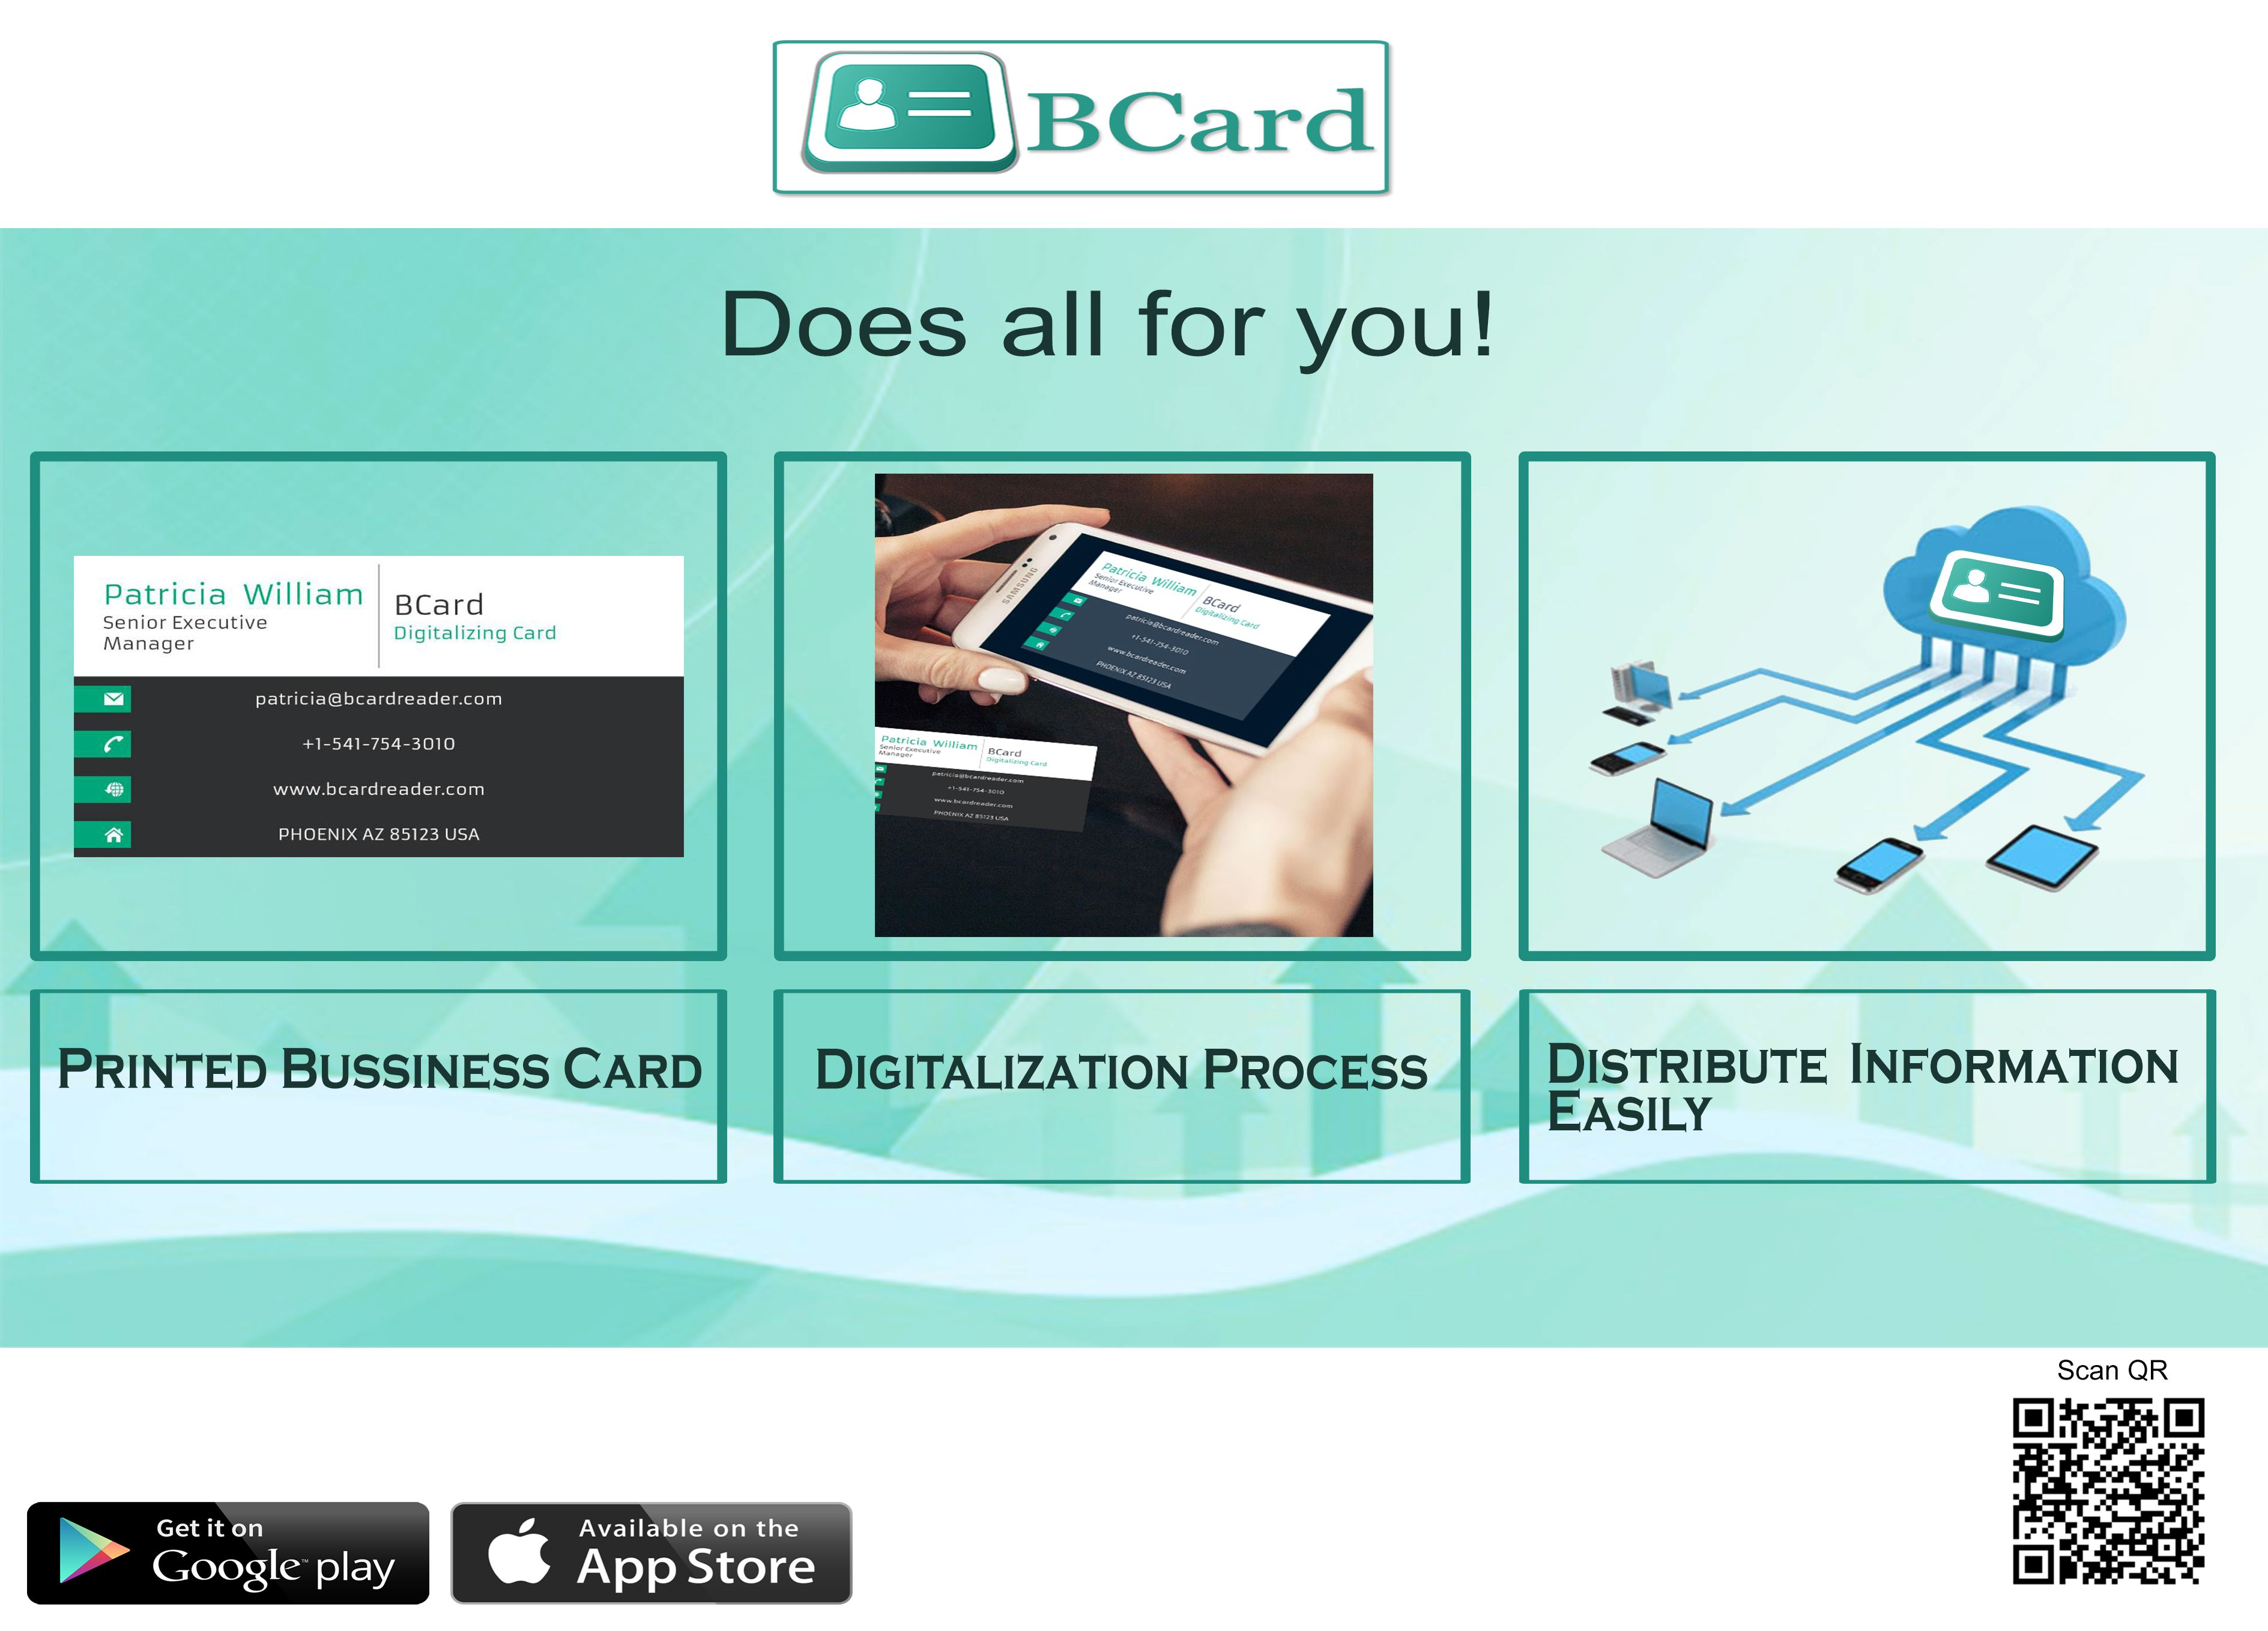 Save paper save trees manage your all paper business card with bcard business card reader app for androidios it scans your business cardsvisiting cards stores and organizes them in digital form transcribe data from business colourmoves